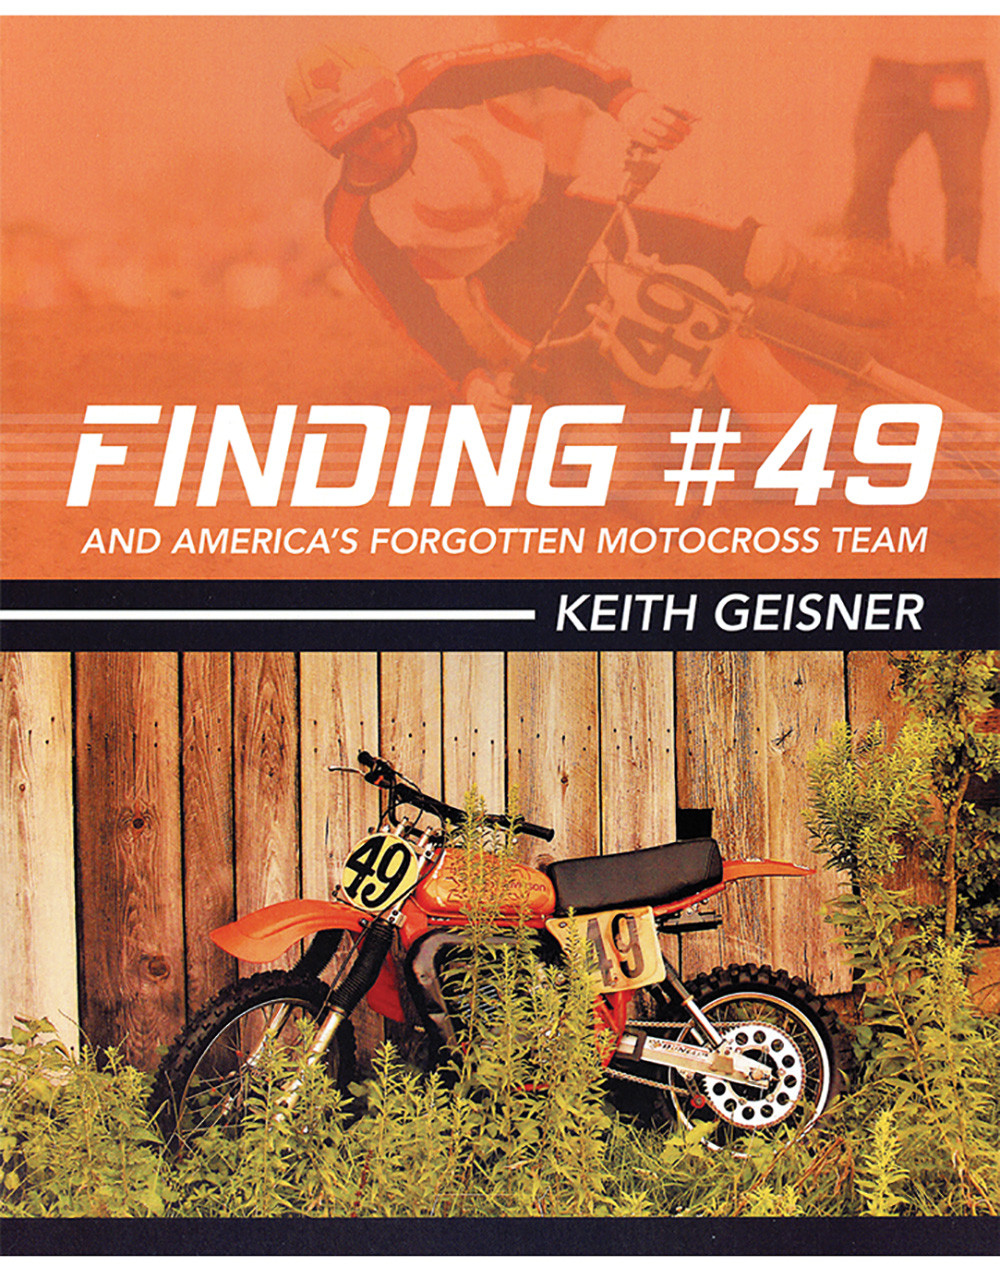 Motocross rider takes a sharp curve with #49 at top of poster #49 restored leans against old barn at bottom of poster